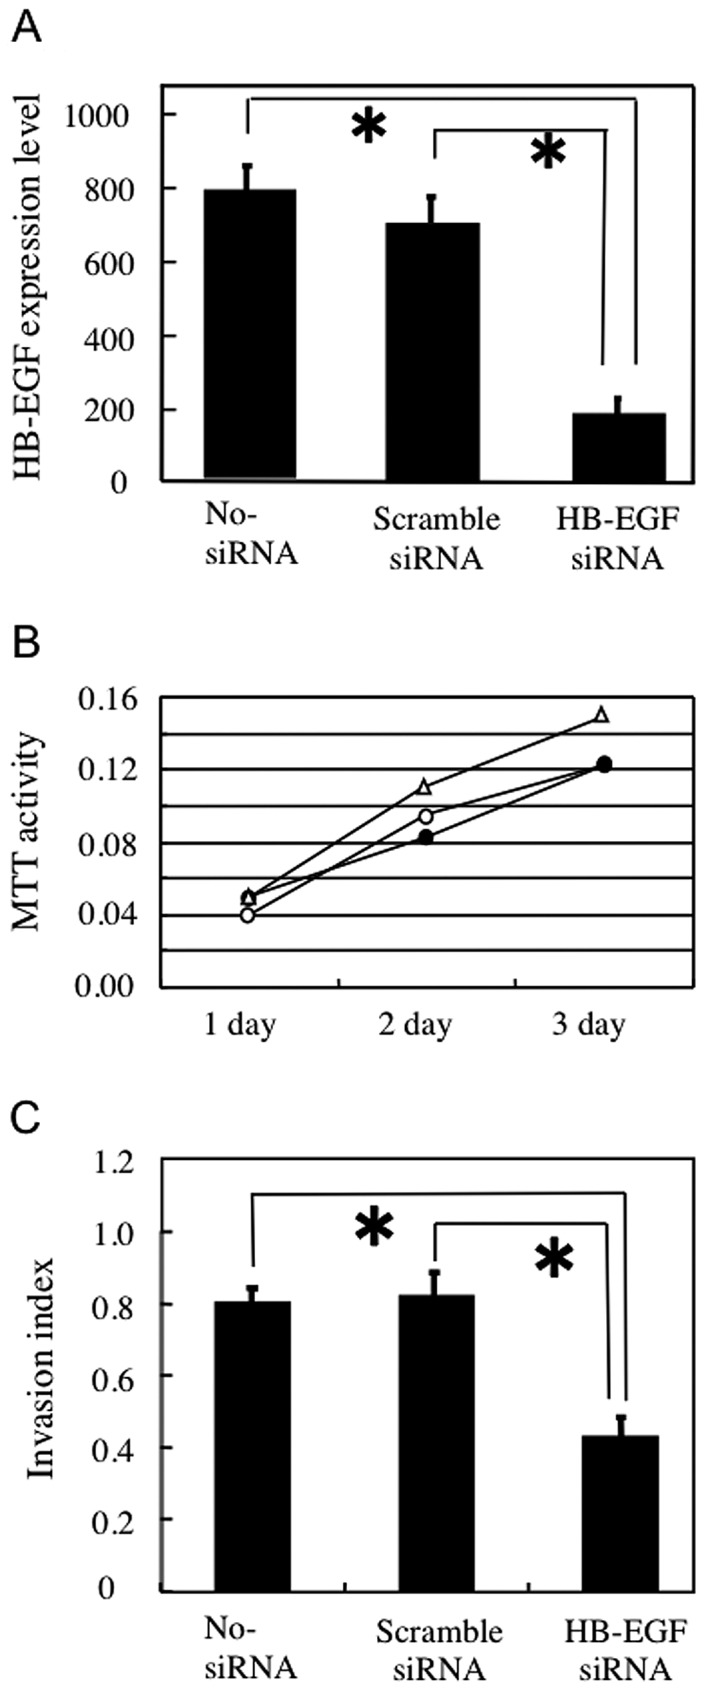 Knockdown of heparin-binding epidermal growth factor-like growth factor (HB-EGF) affects invasion activity in HSC3 cells. (A) Expression of HB-EGF mRNA in HSC3 cells treated with siRNAs was determined by real-time RT-PCR. The amount of HB-EGF mRNA was significantly reduced in HB-EGF siRNA-treated HSC3 cells compared with that in control no-siRNA or scrambled-siRNA-treated HSC3 cells. (B) Effect of HB-EGF on HSC3 cell proliferation. The MTT assay showed similar proliferation rates among cells treated with HB-EGF siRNA (closed circle), no-siRNA (triangle), and scrambled-siRNA (open circle). (C) Invasion activity of HB-EGF siRNA-transfected HSC3 cells as determined by the Matrigel invasion assay. The invasion index represents the ratio of cells migrating through a Matrigel-coated membrane/cells migrating through a control non-coated membrane. No-siRNA and scrambled-siRNA transfectants were highly invasive, whereas the invasiveness of HB-EGF siRNA-transfected HSC3 cells was significantly lower.